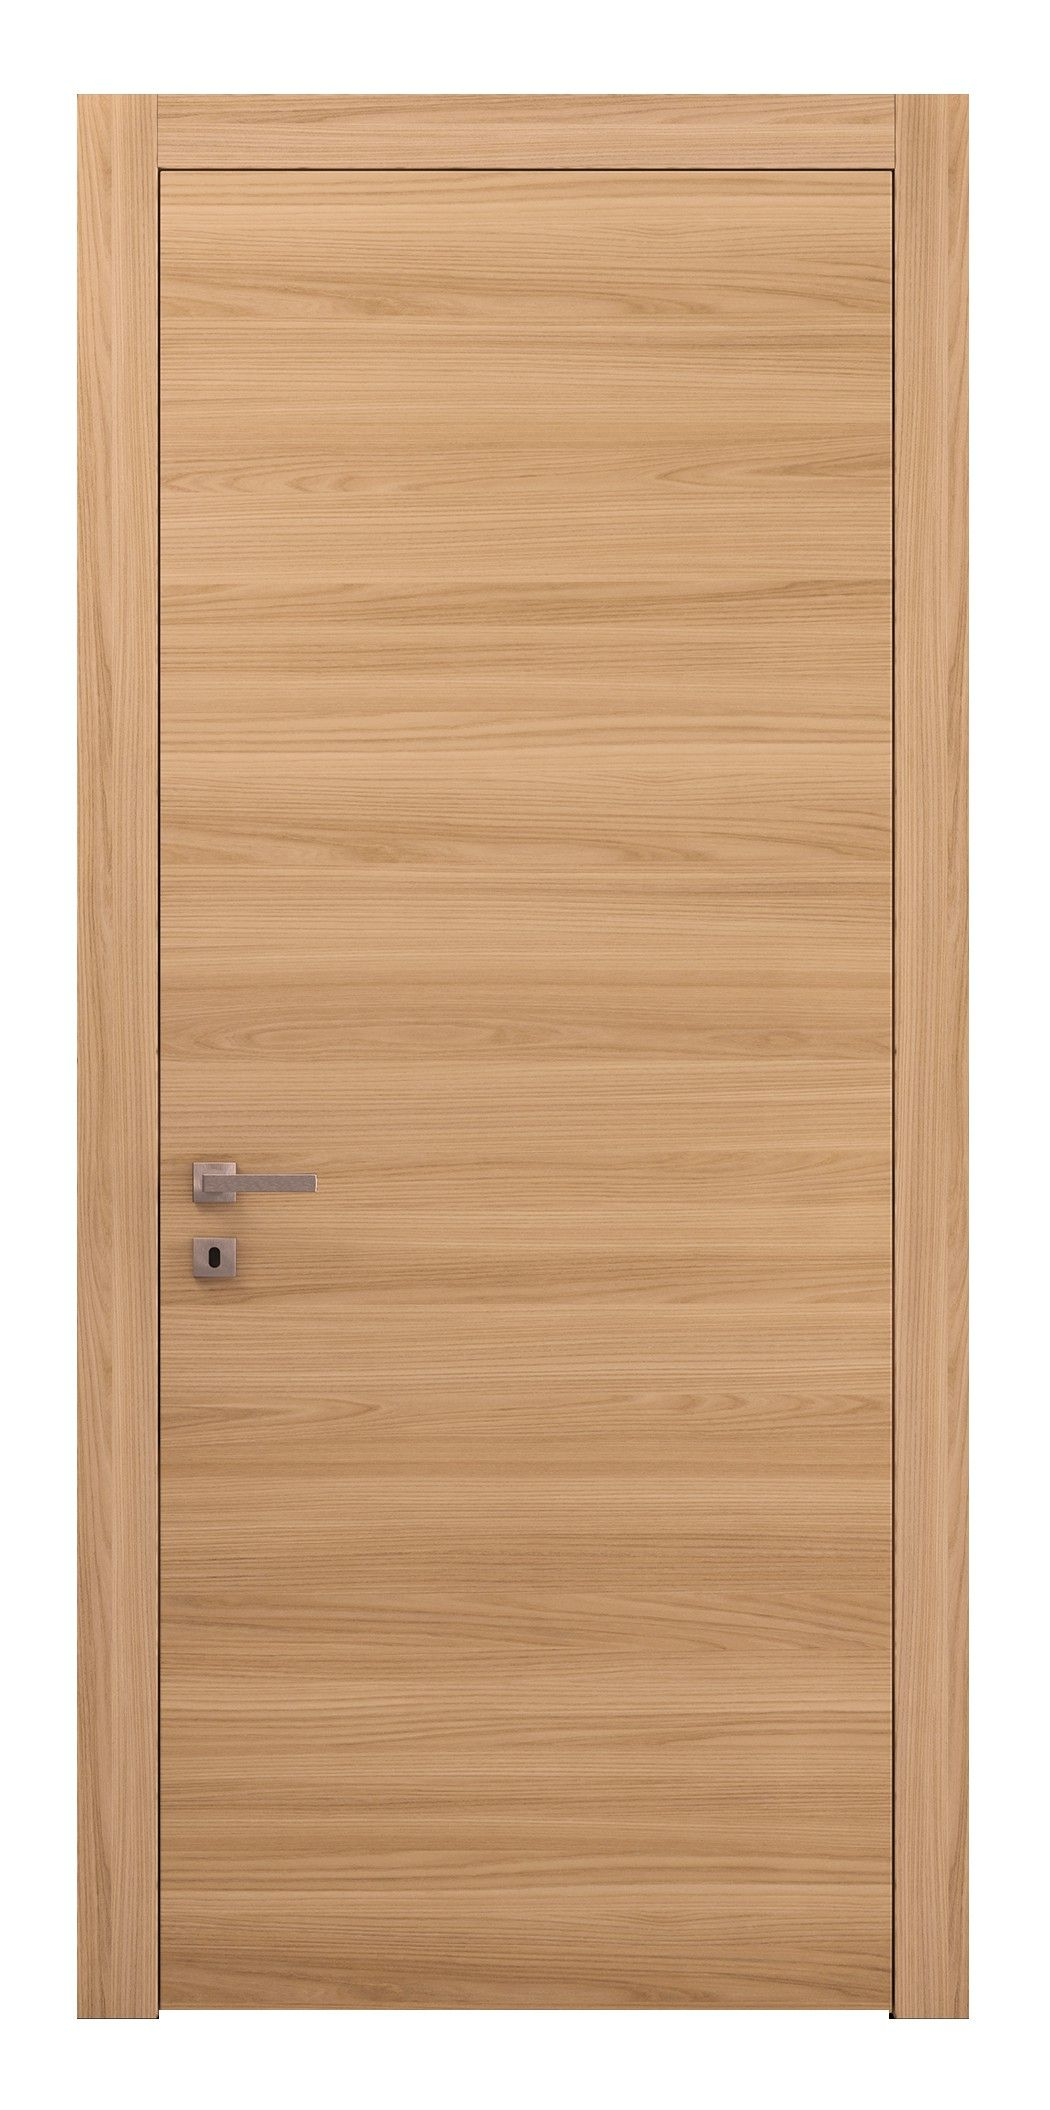 This Modern Neoclassic Interior Door Is Made From A Solid Wood Frame